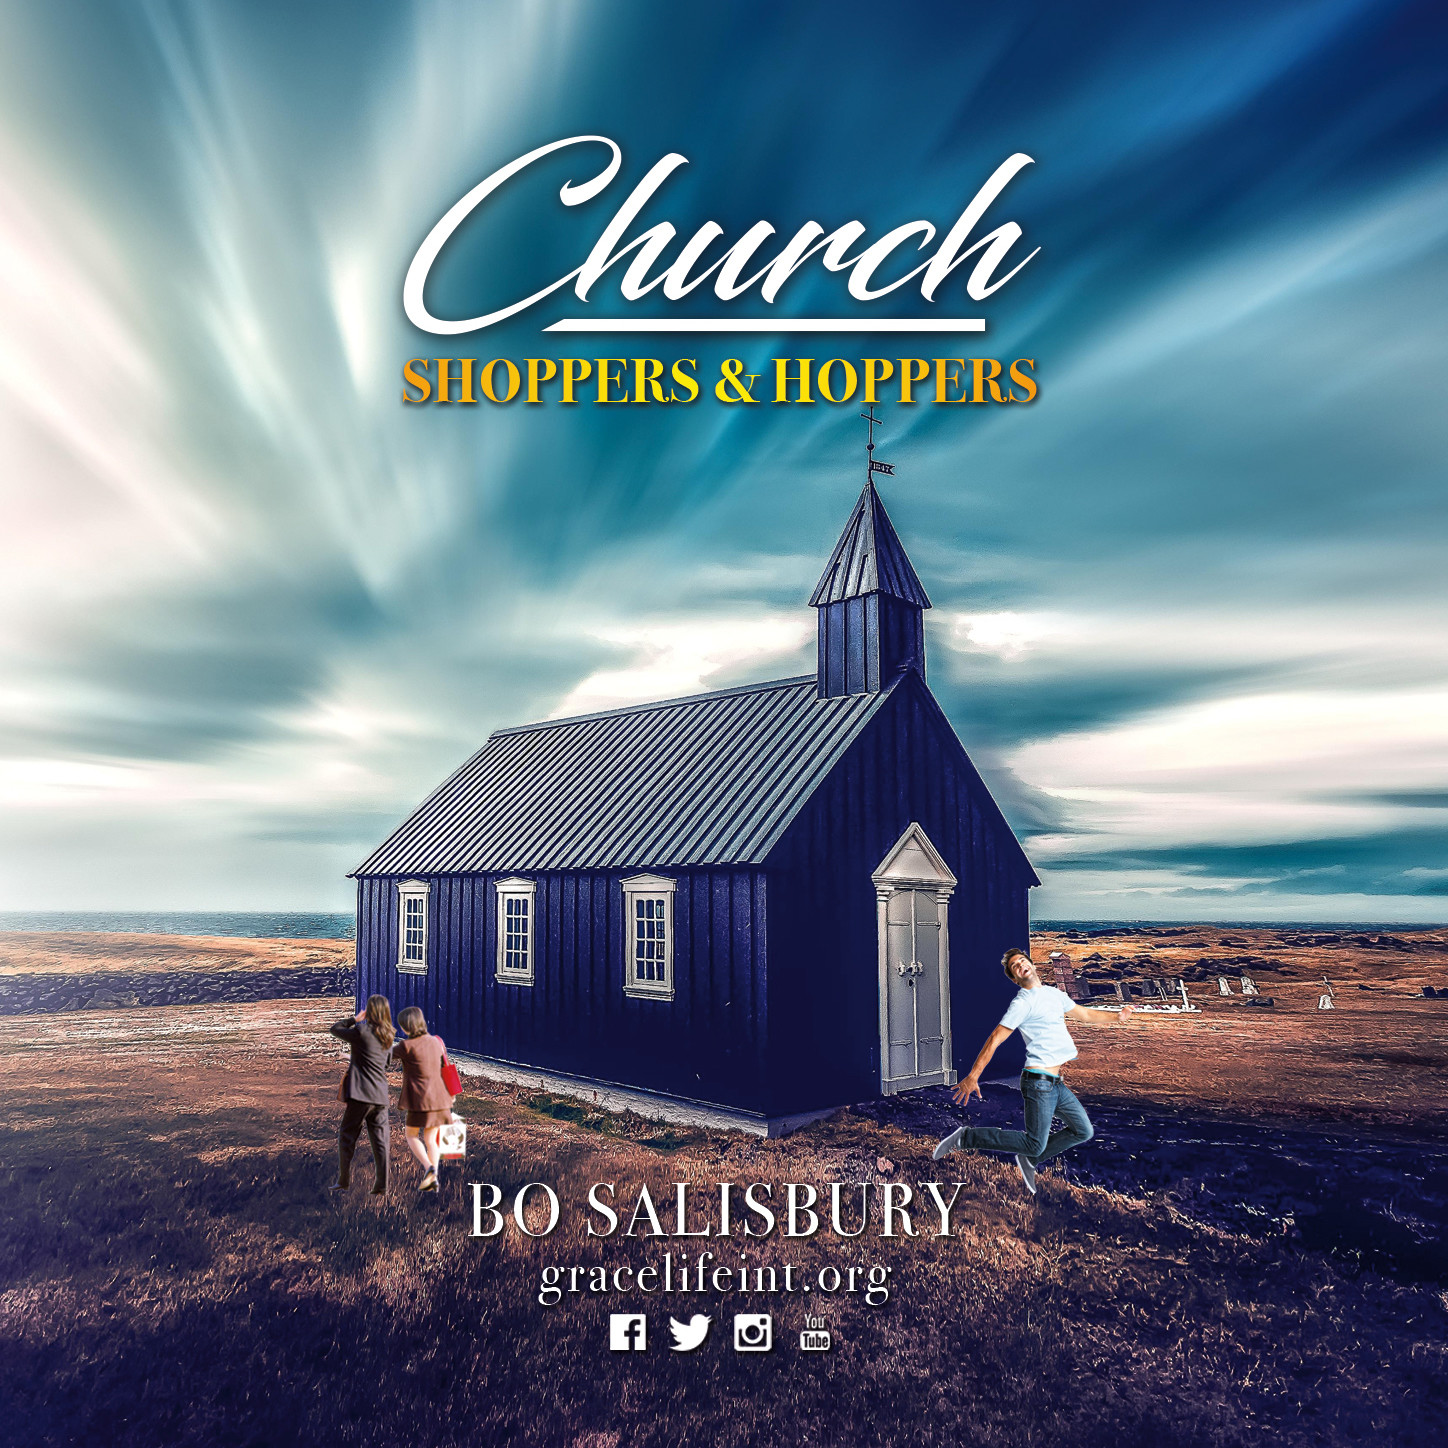 Church Hoppers and Shoppers (MP3 download)